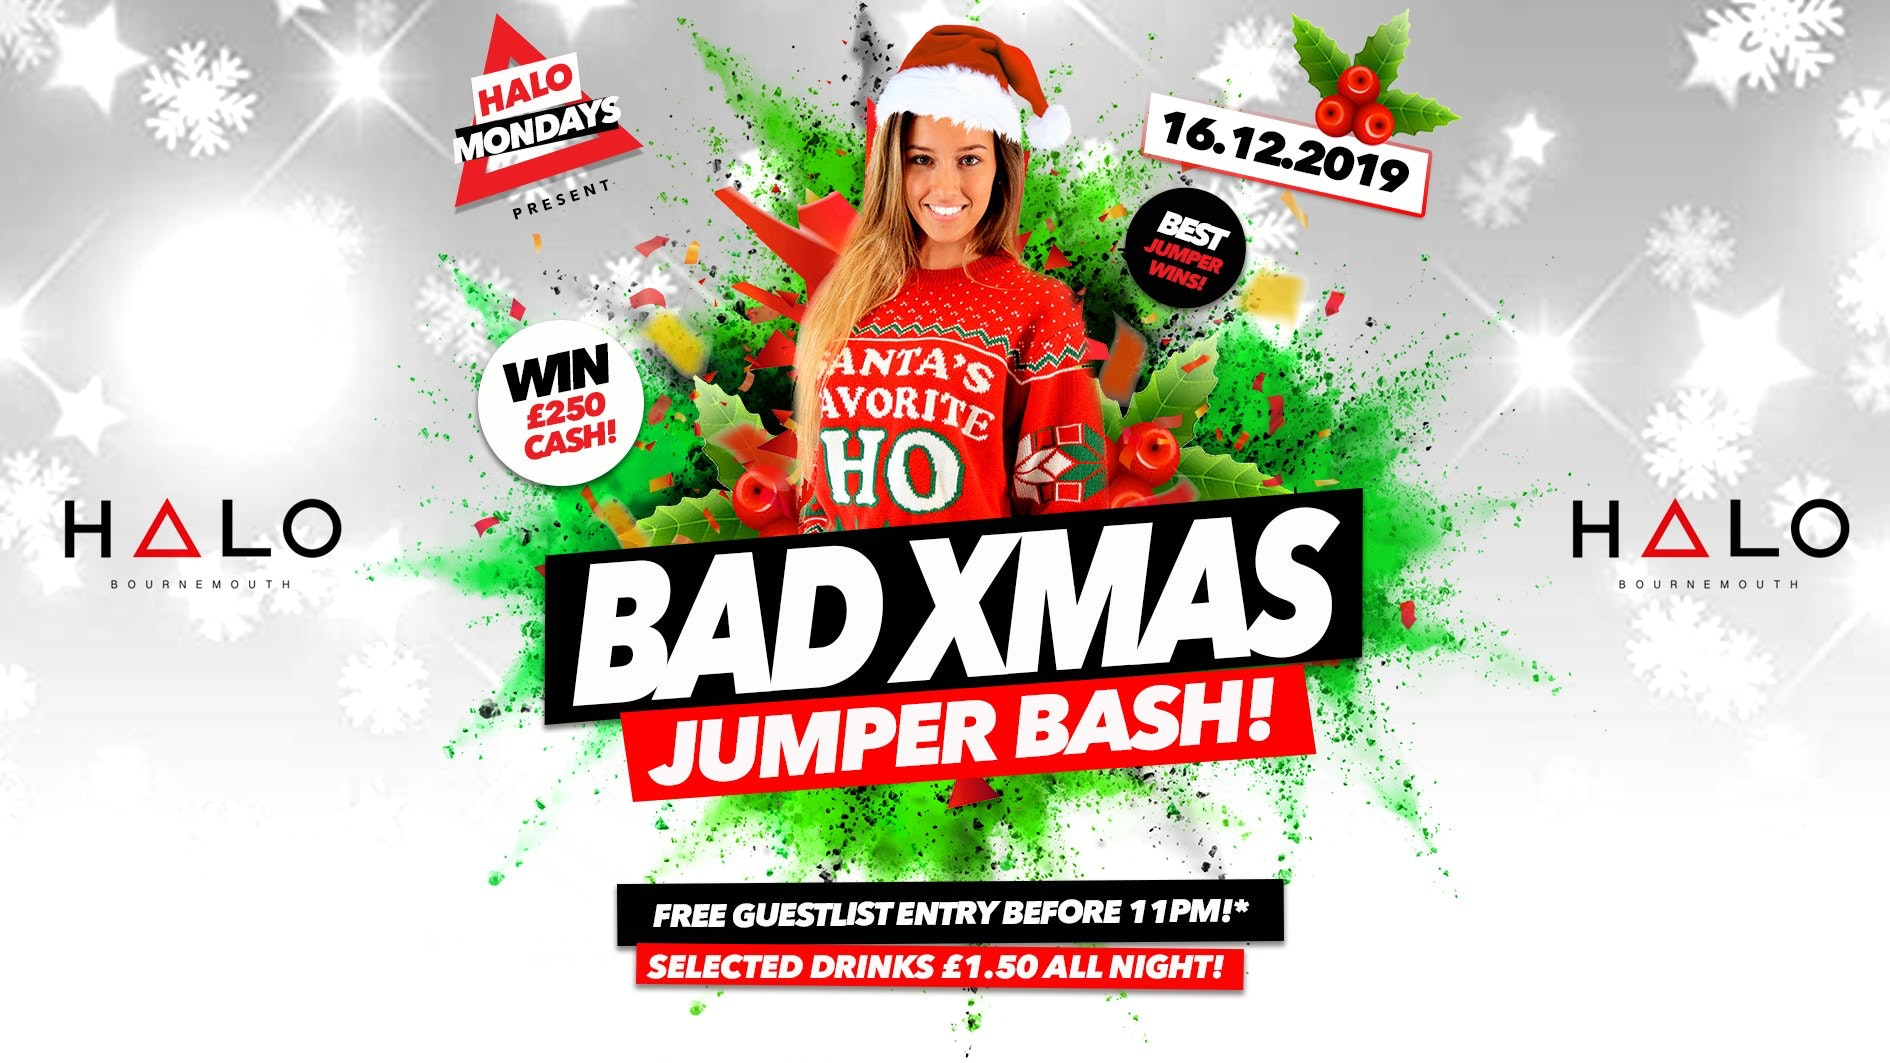 Bad Xmas Jumper Bash – Win £250 Cash!